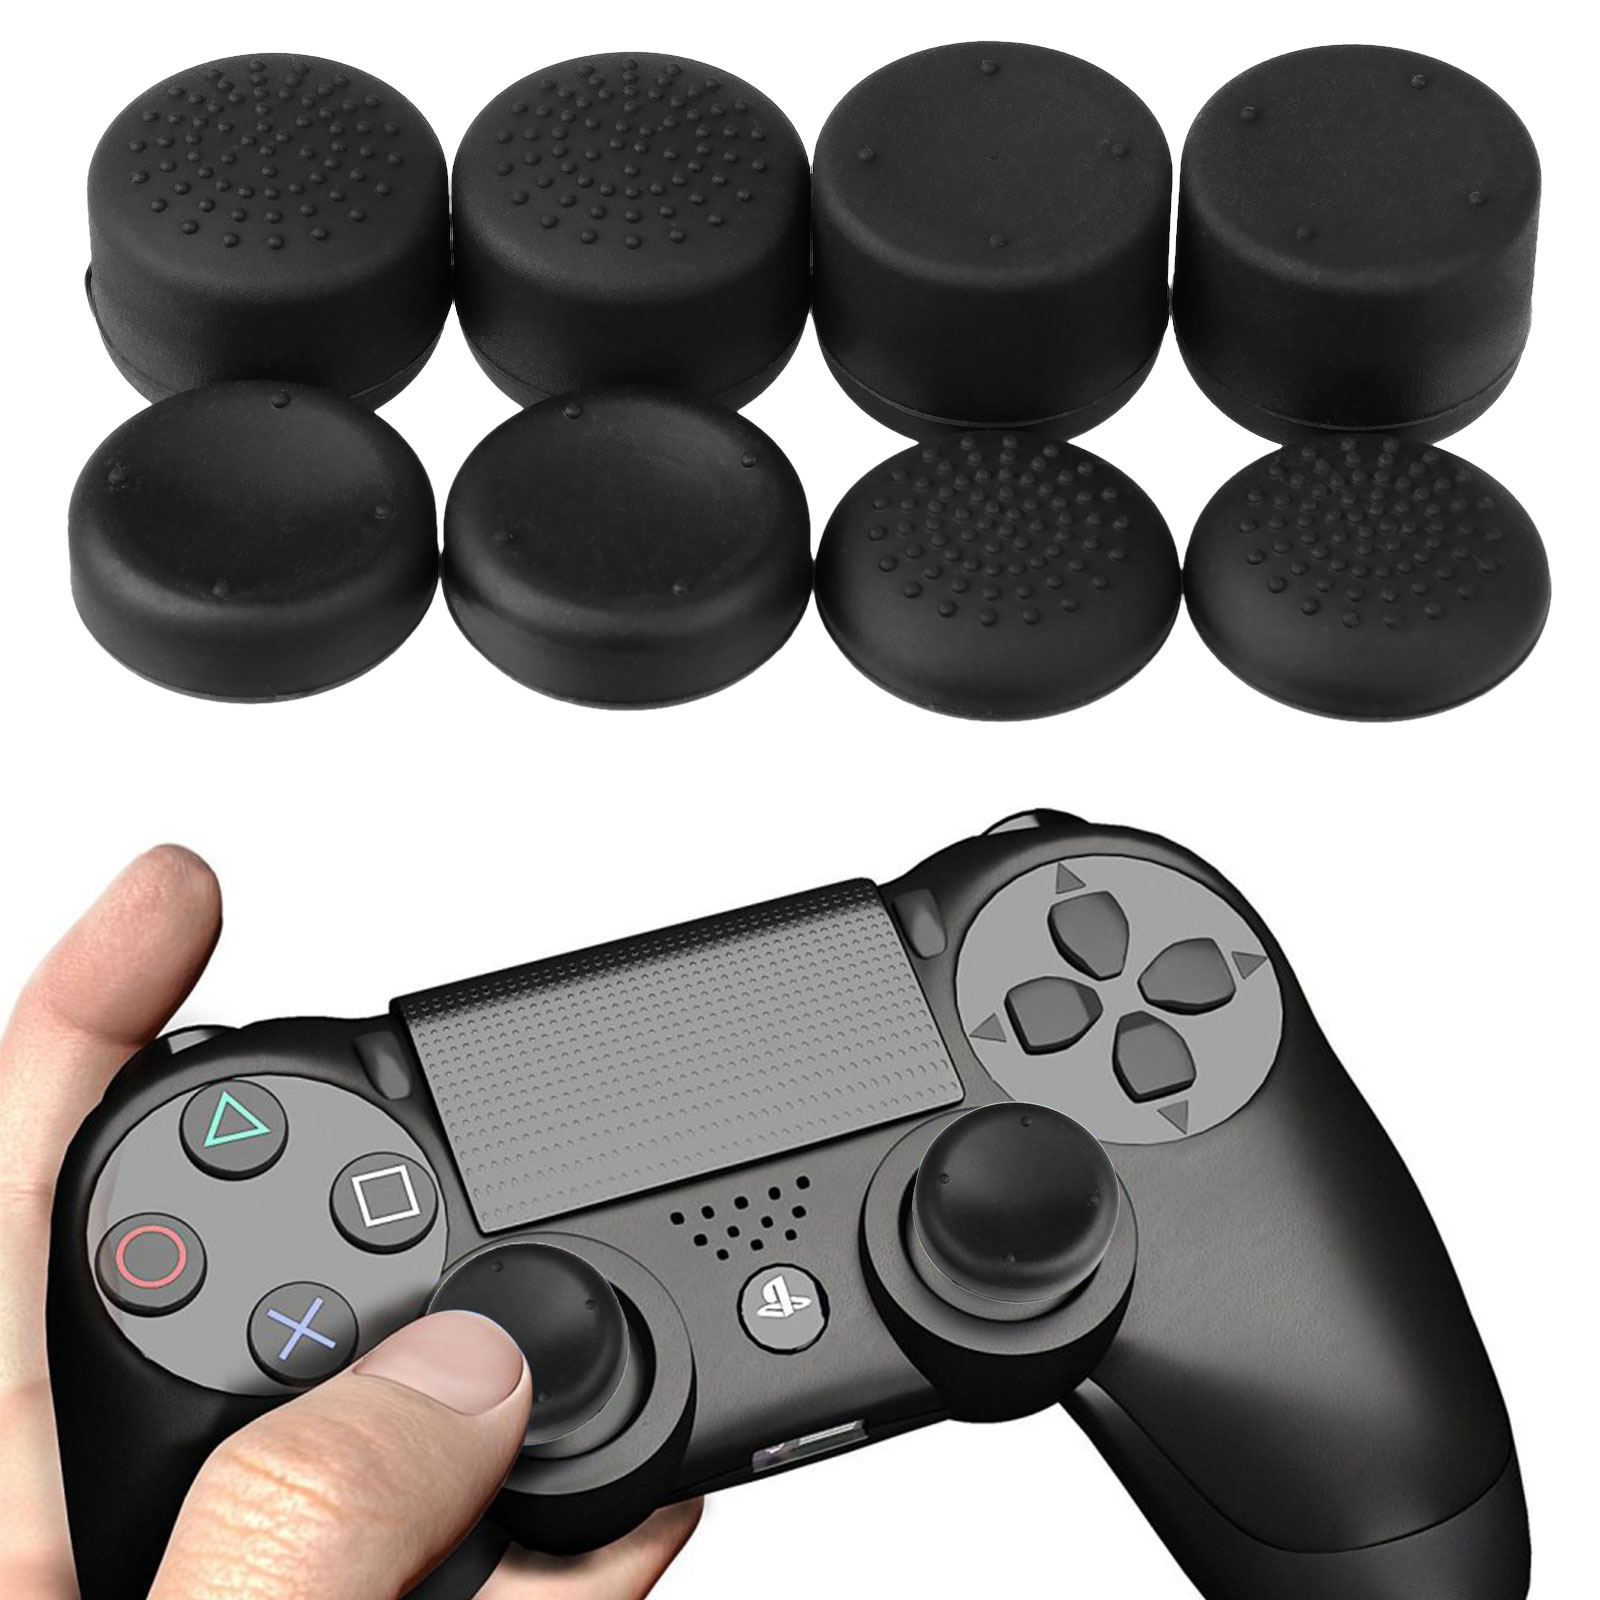 8-pack Controller Gamepad Raised Antislip Thumb Stick Grips Thumbsticks Joystick Cap Cover for PS4, Xbox one Controller